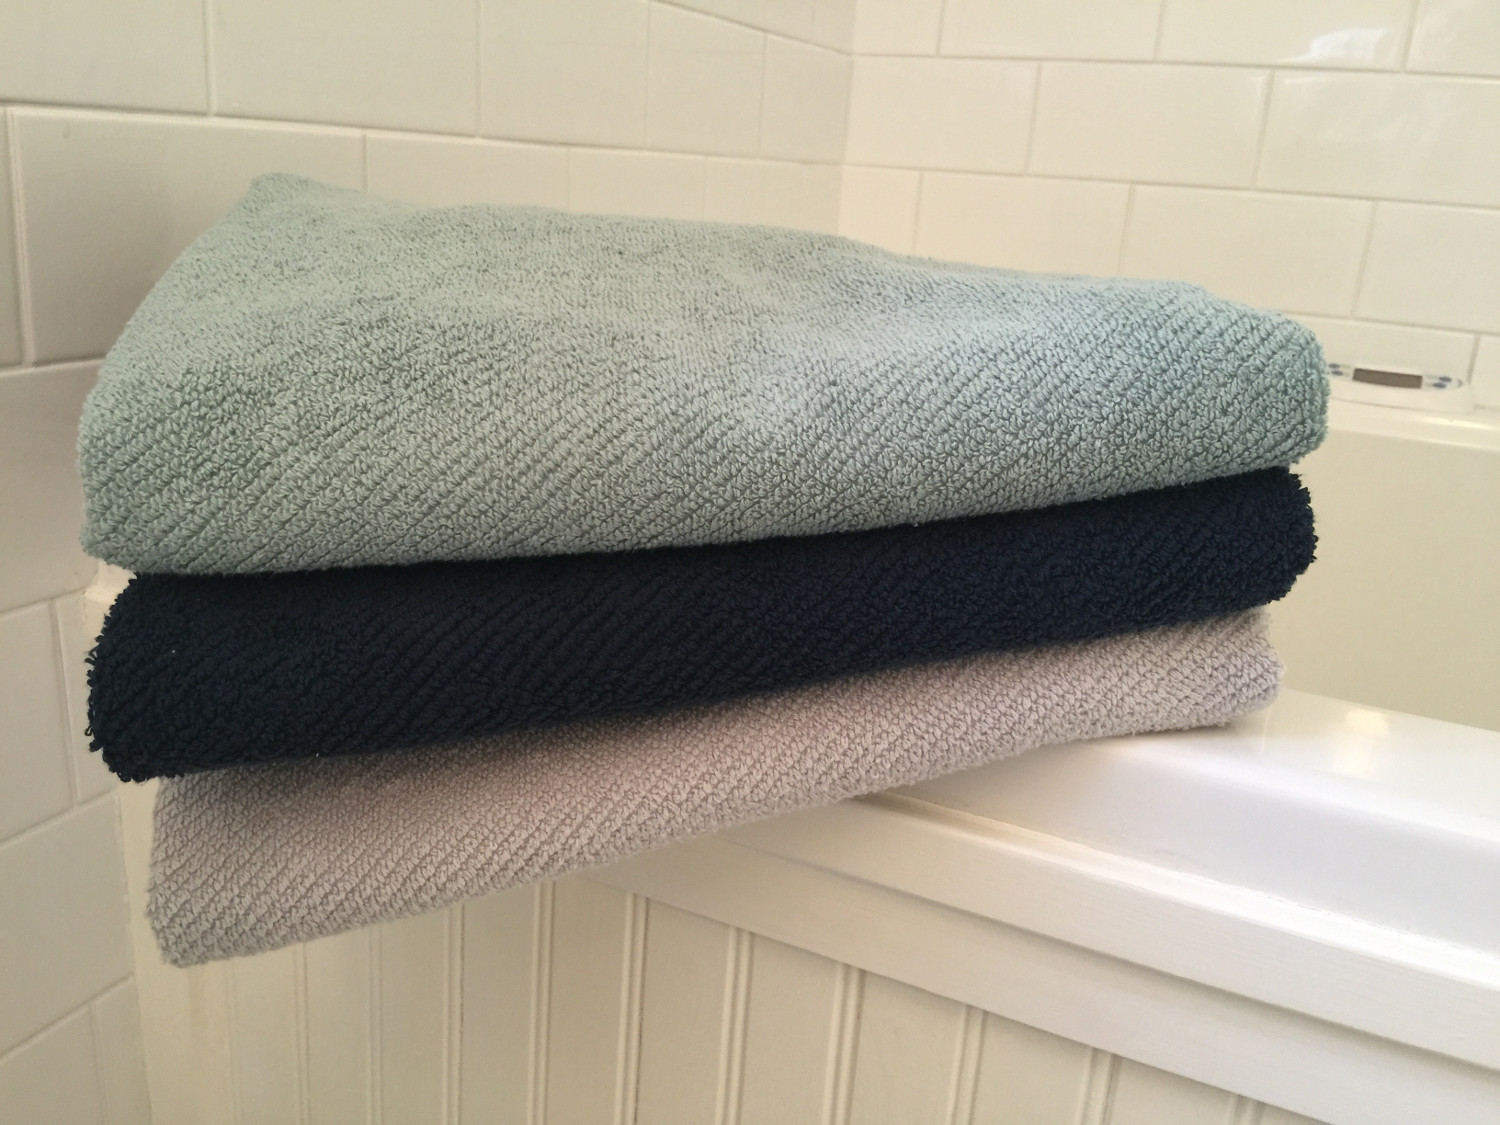 Ideal I uve bee obsessed with buying bath towels online u shopping is like a home d cor treasure hunt